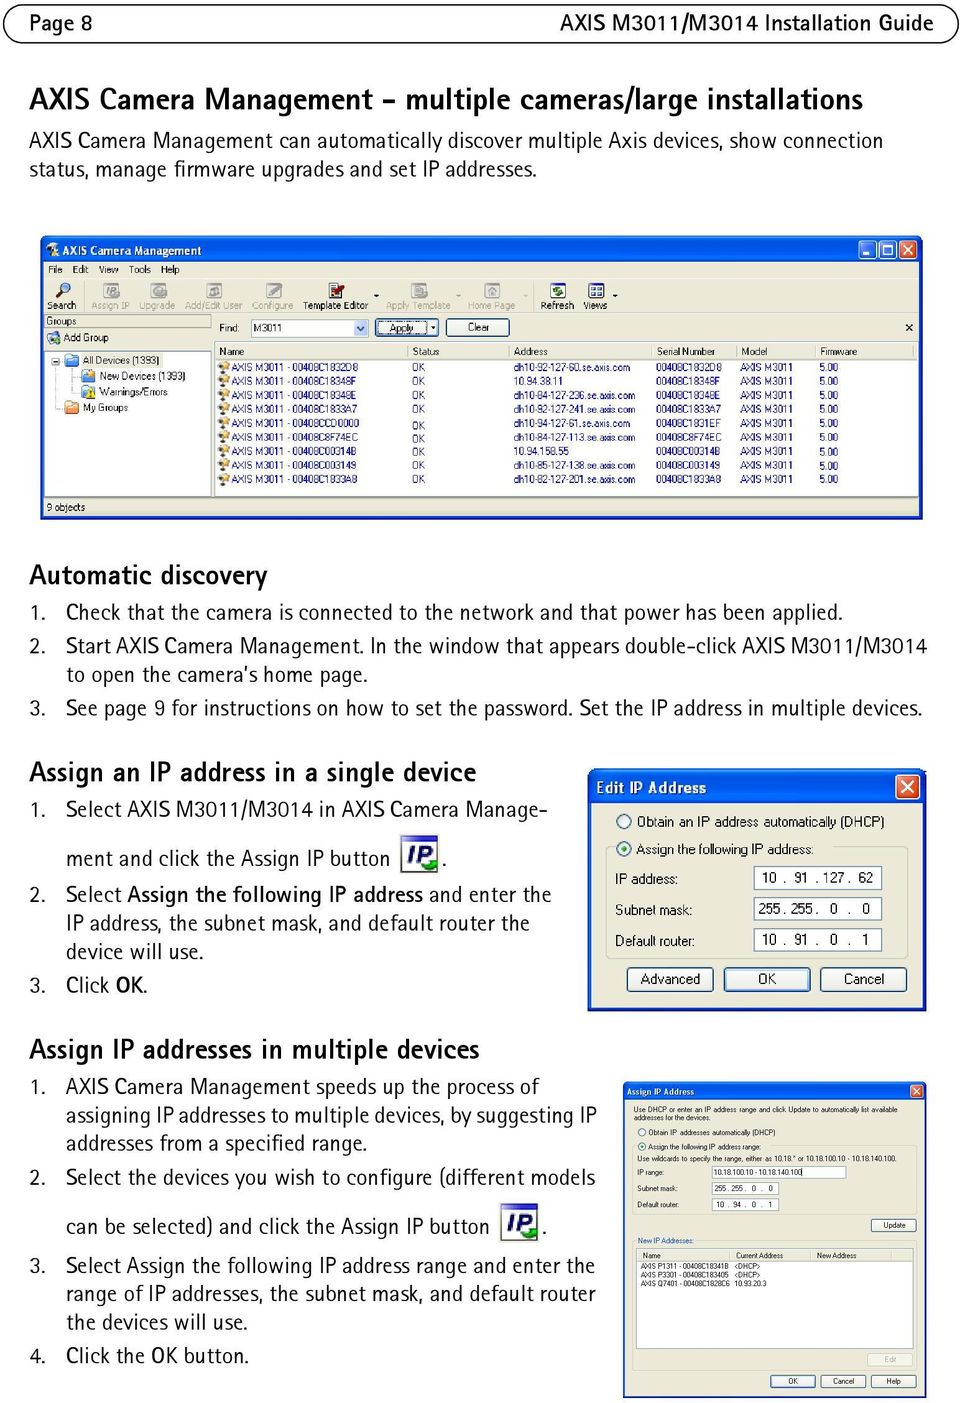 In the window that appears double-click AXIS M3011/M3014 to open the camera s home page. 3. See page 9 for instructions on how to set the password. Set the IP address in multiple devices.